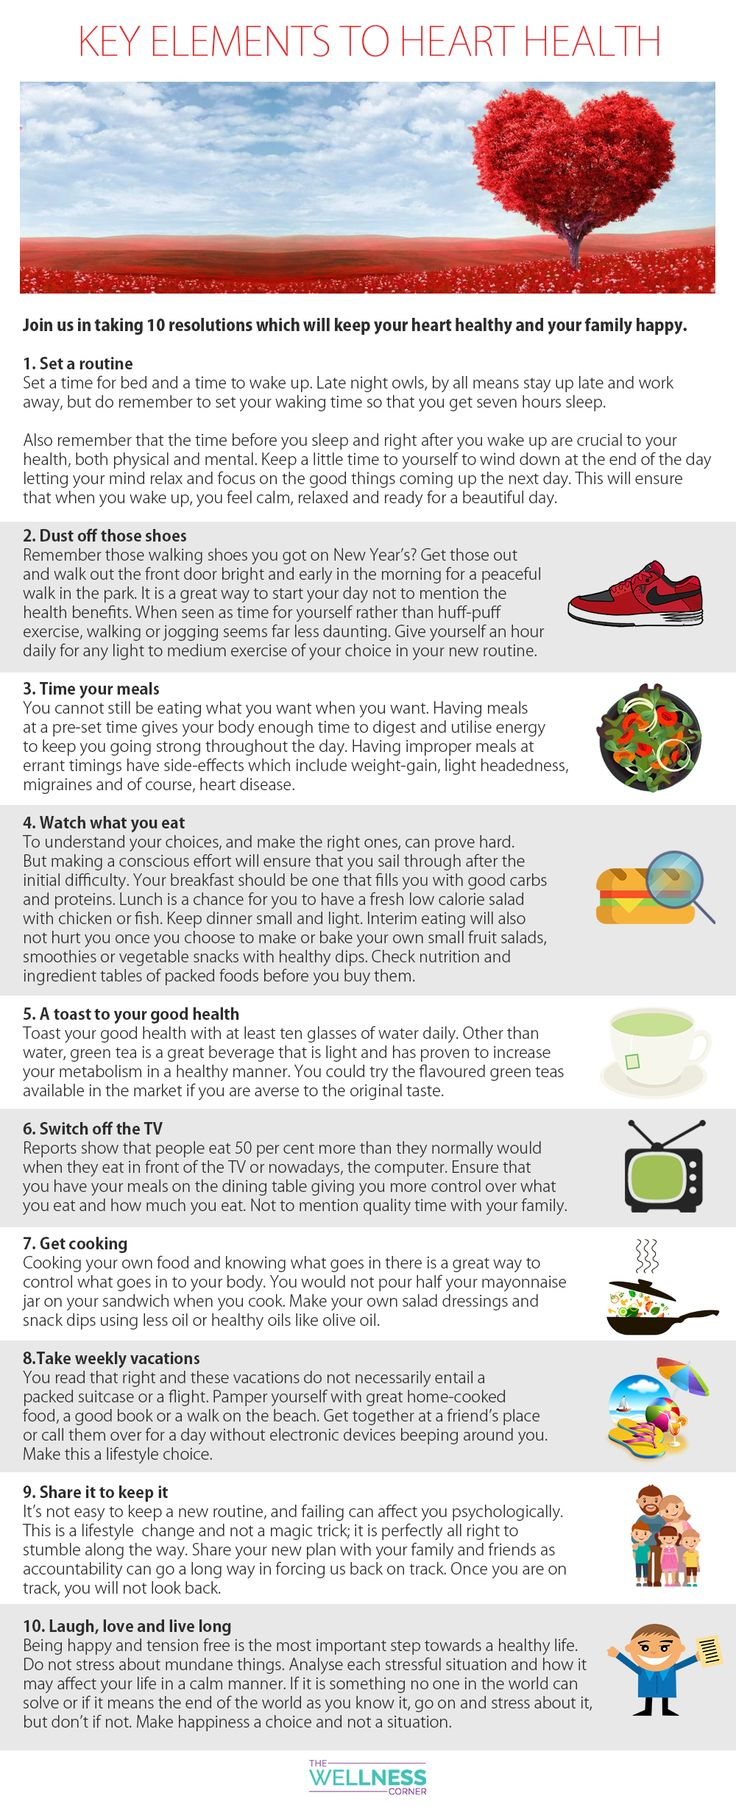 How To Keep Healthy My Heart: Tips Are Here: Photo